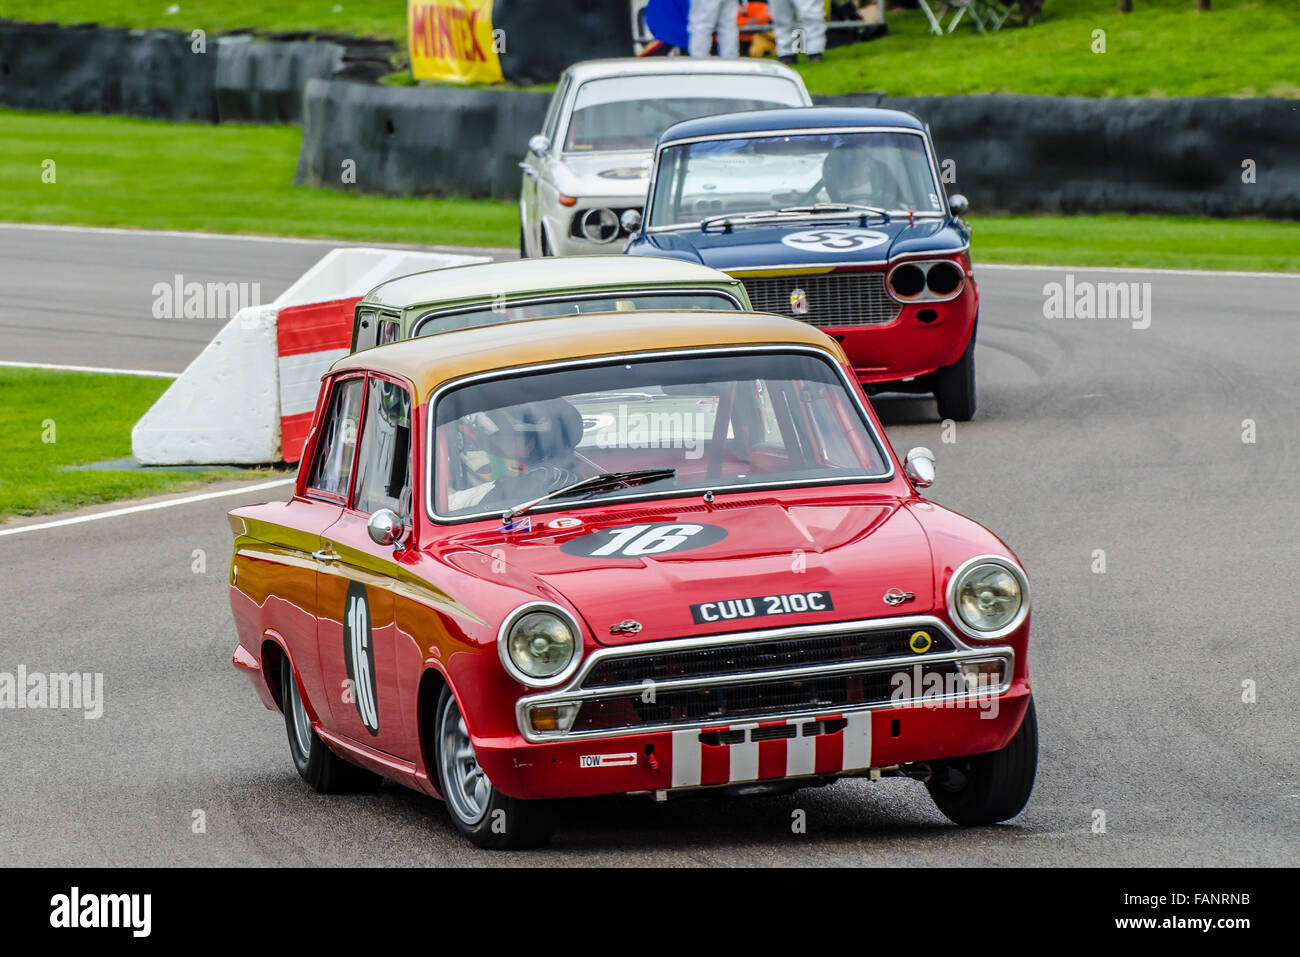 1965 Lotus Cortina Mk1 Is Owned By Gavin Henderson And Was